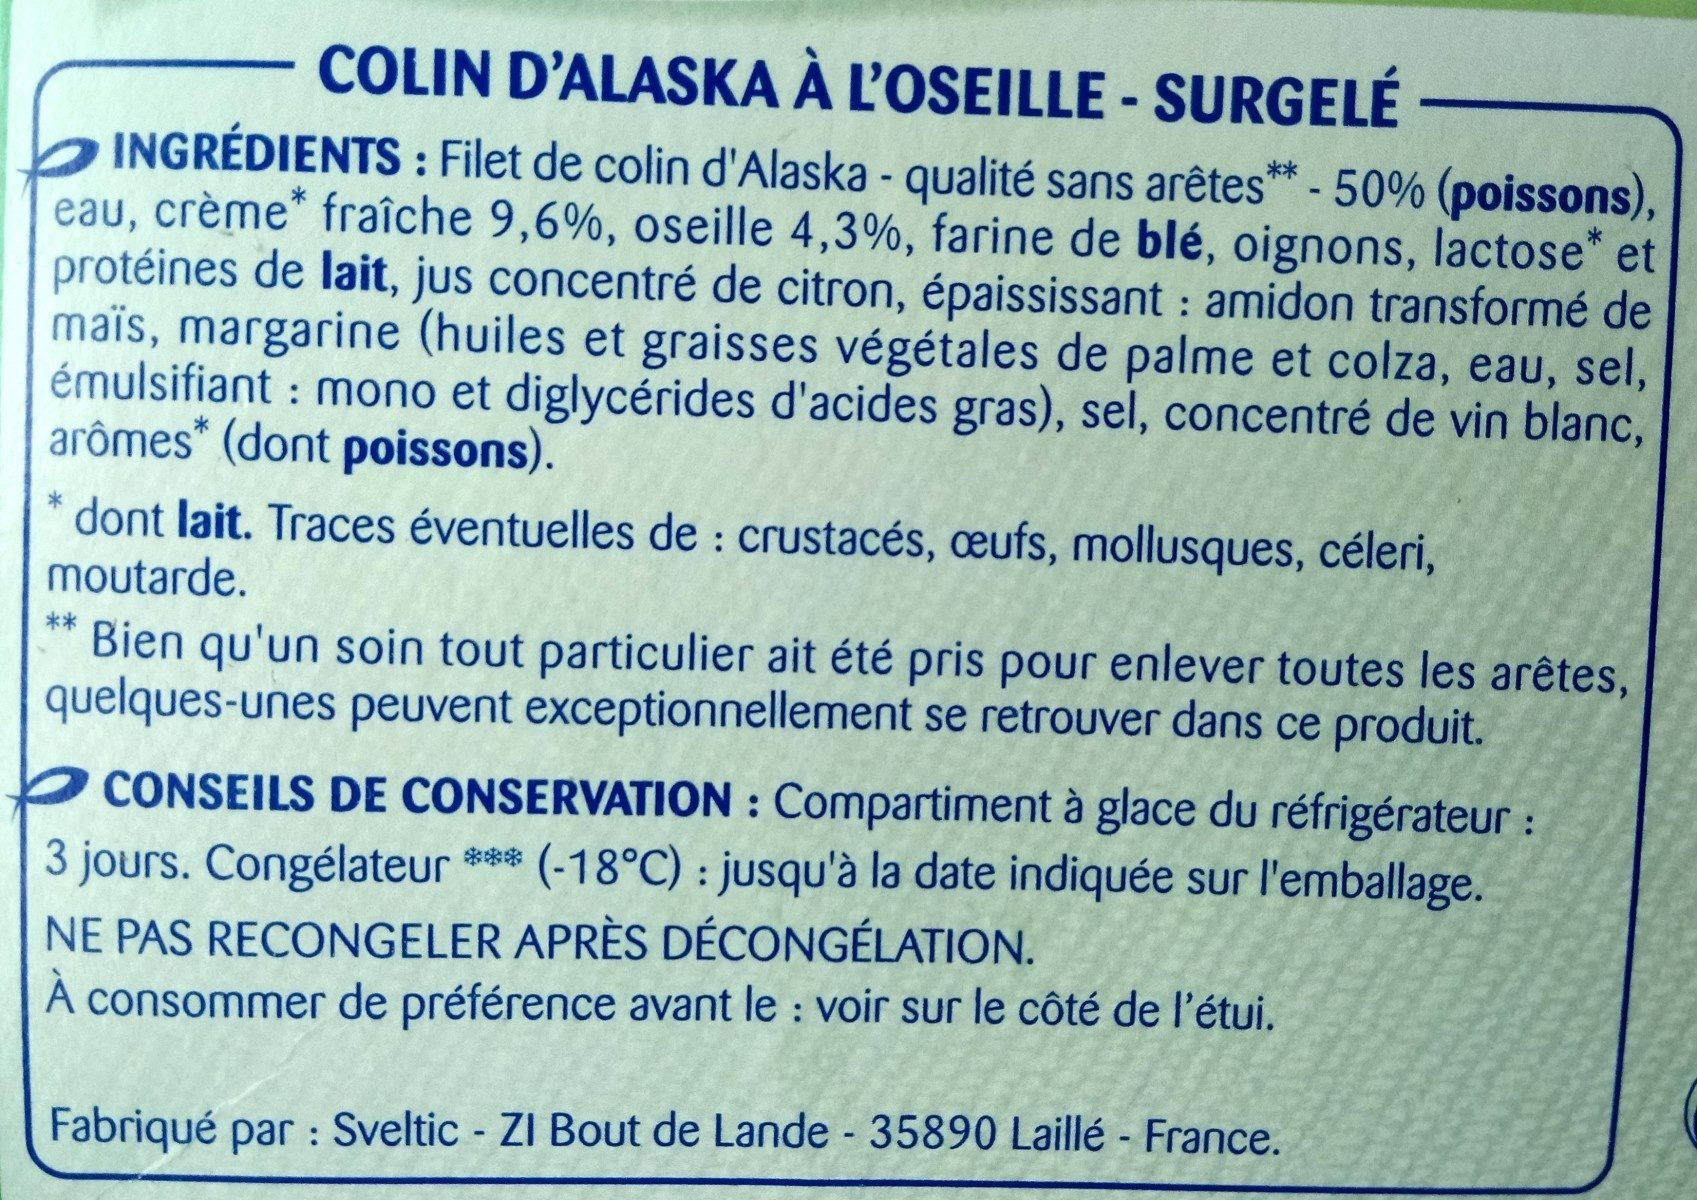 Colin d'Alaska à l'Oseille, Surgelé - Ingredients - fr